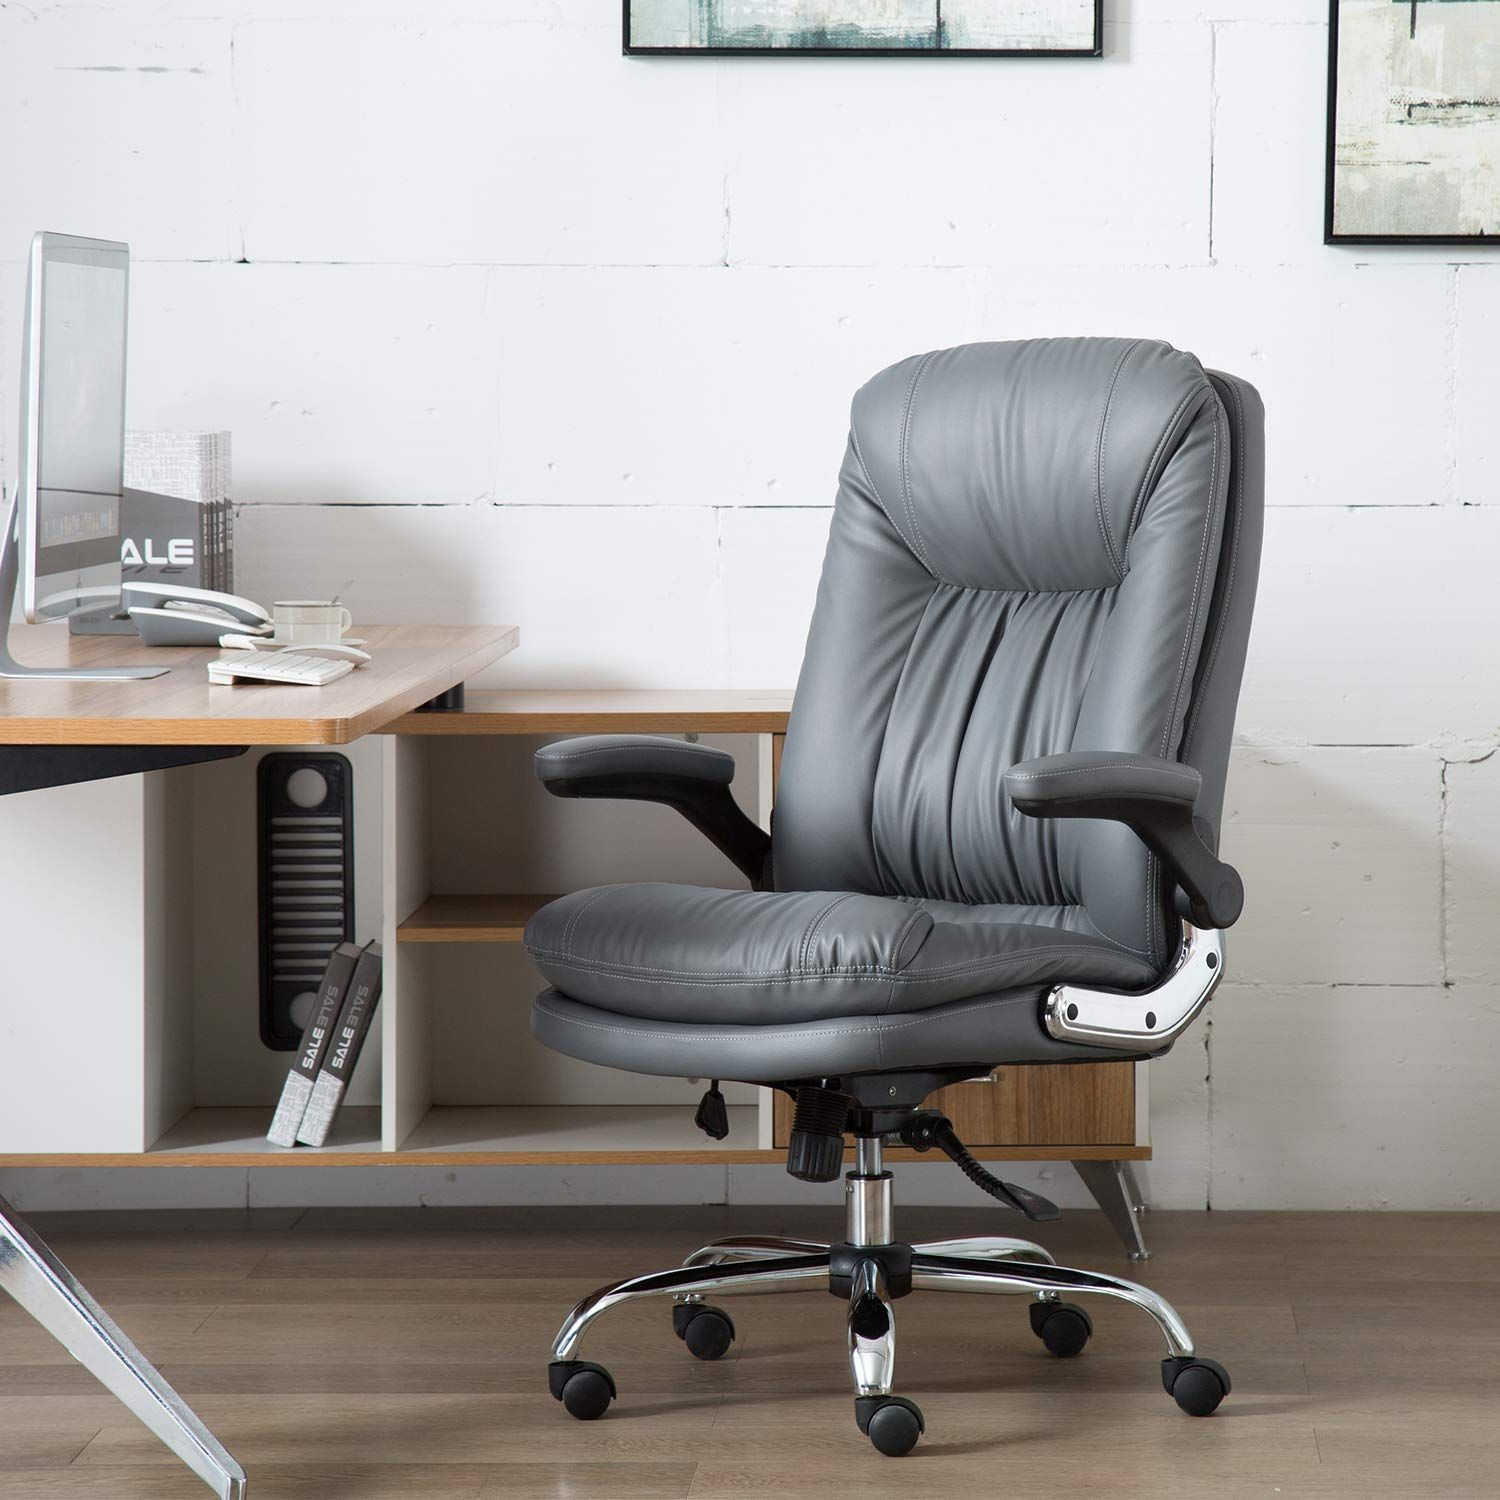 Office Chair In 2020 Executive Office Chairs Office Chair Chair